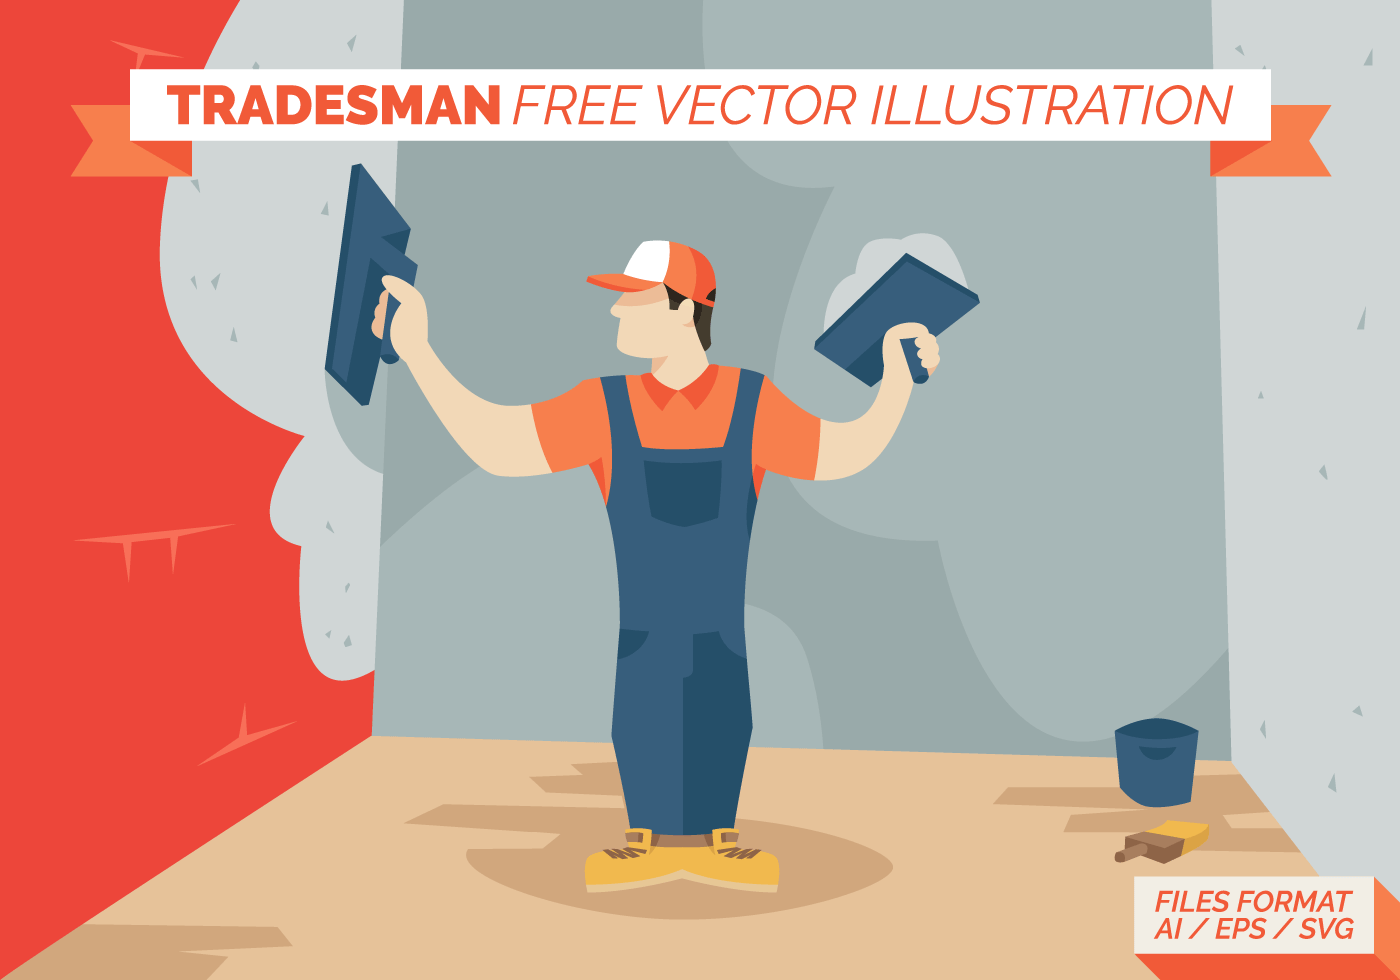 Tradesman Free Vector Illustration  Download Free Vector